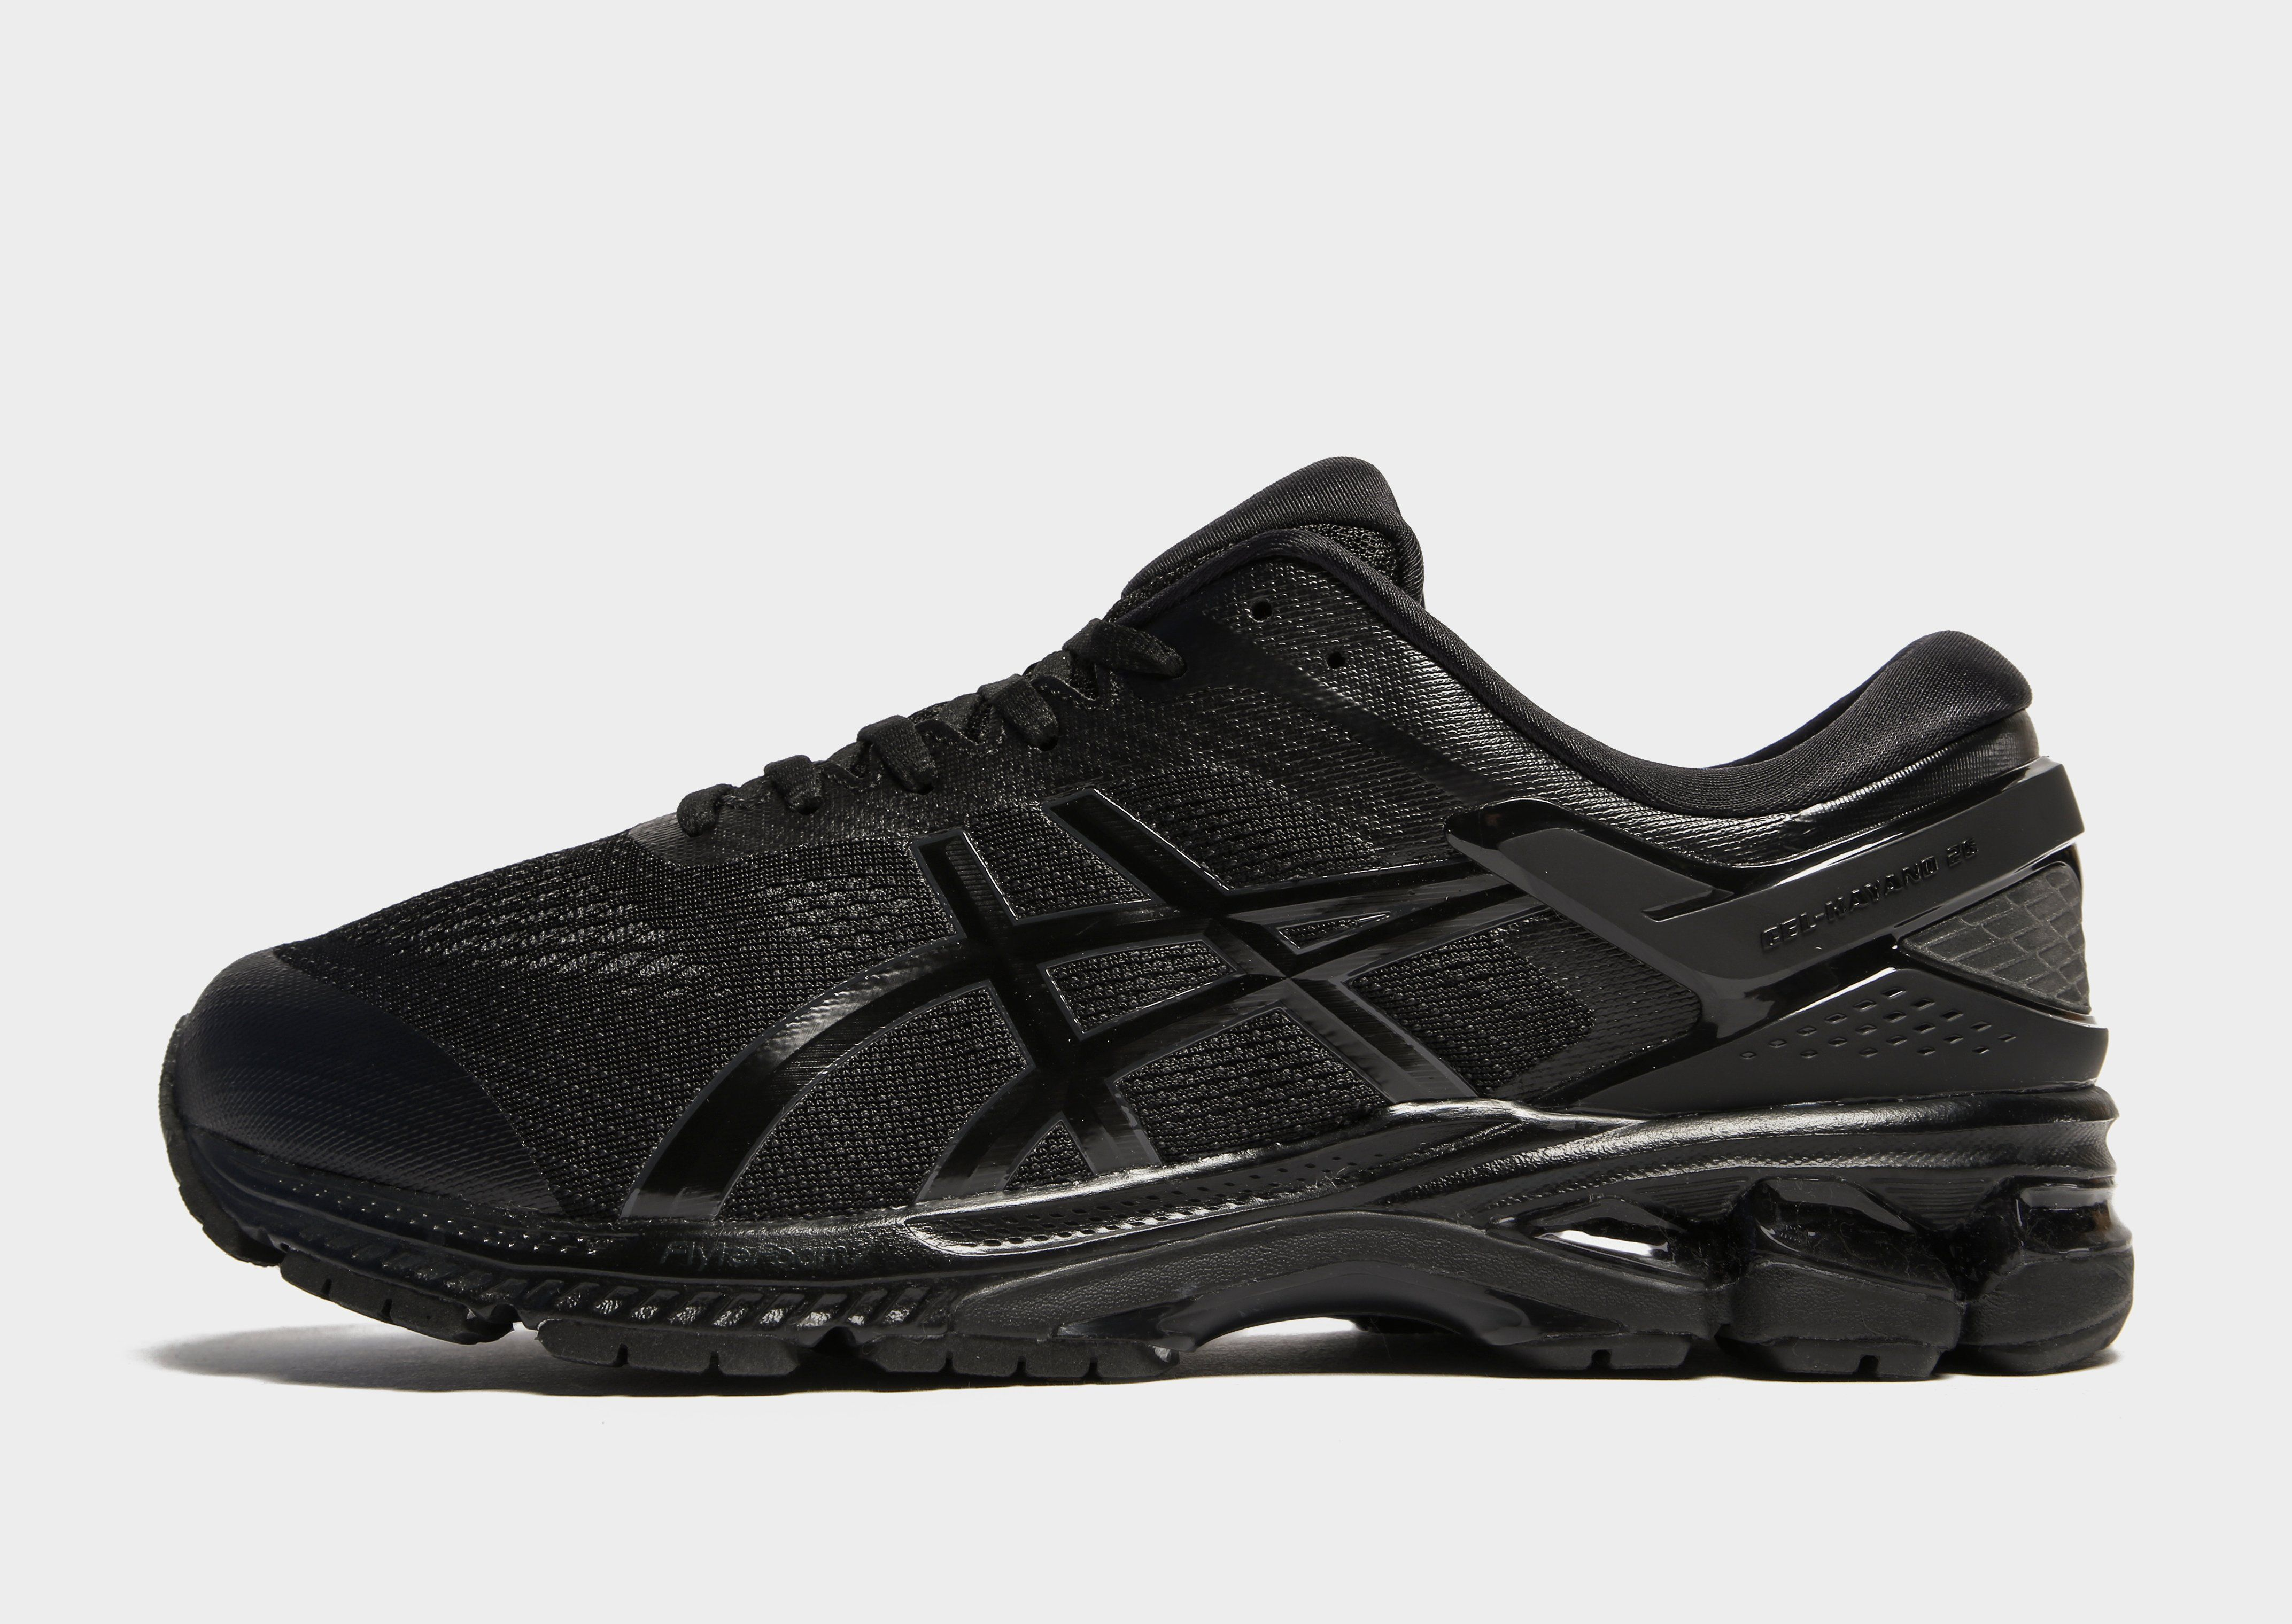 super populaire 9728e d4734 ASICS GEL-Kayano 26 | JD Sports